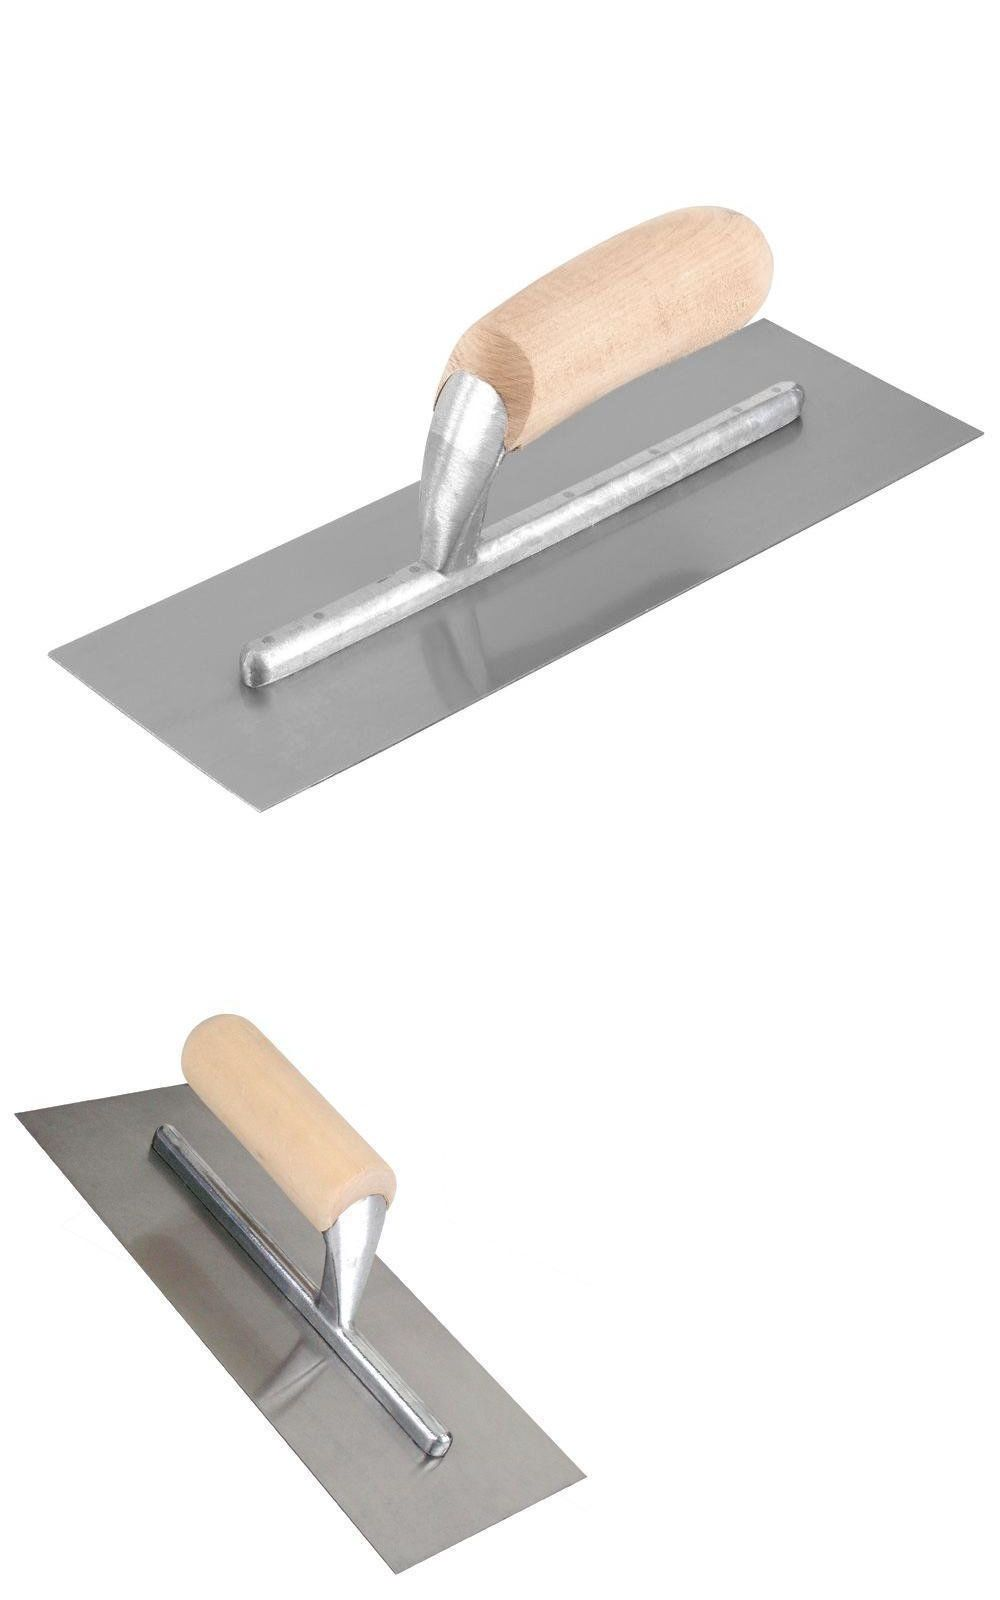 Trowels 168791 Qep Patch Finishing Trowel 4 1 2 In X 11 In No Notch With Wood Handle Buy It Now Only 17 28 On Ebay Trowels P With Images Wood Handle Trowel Wood